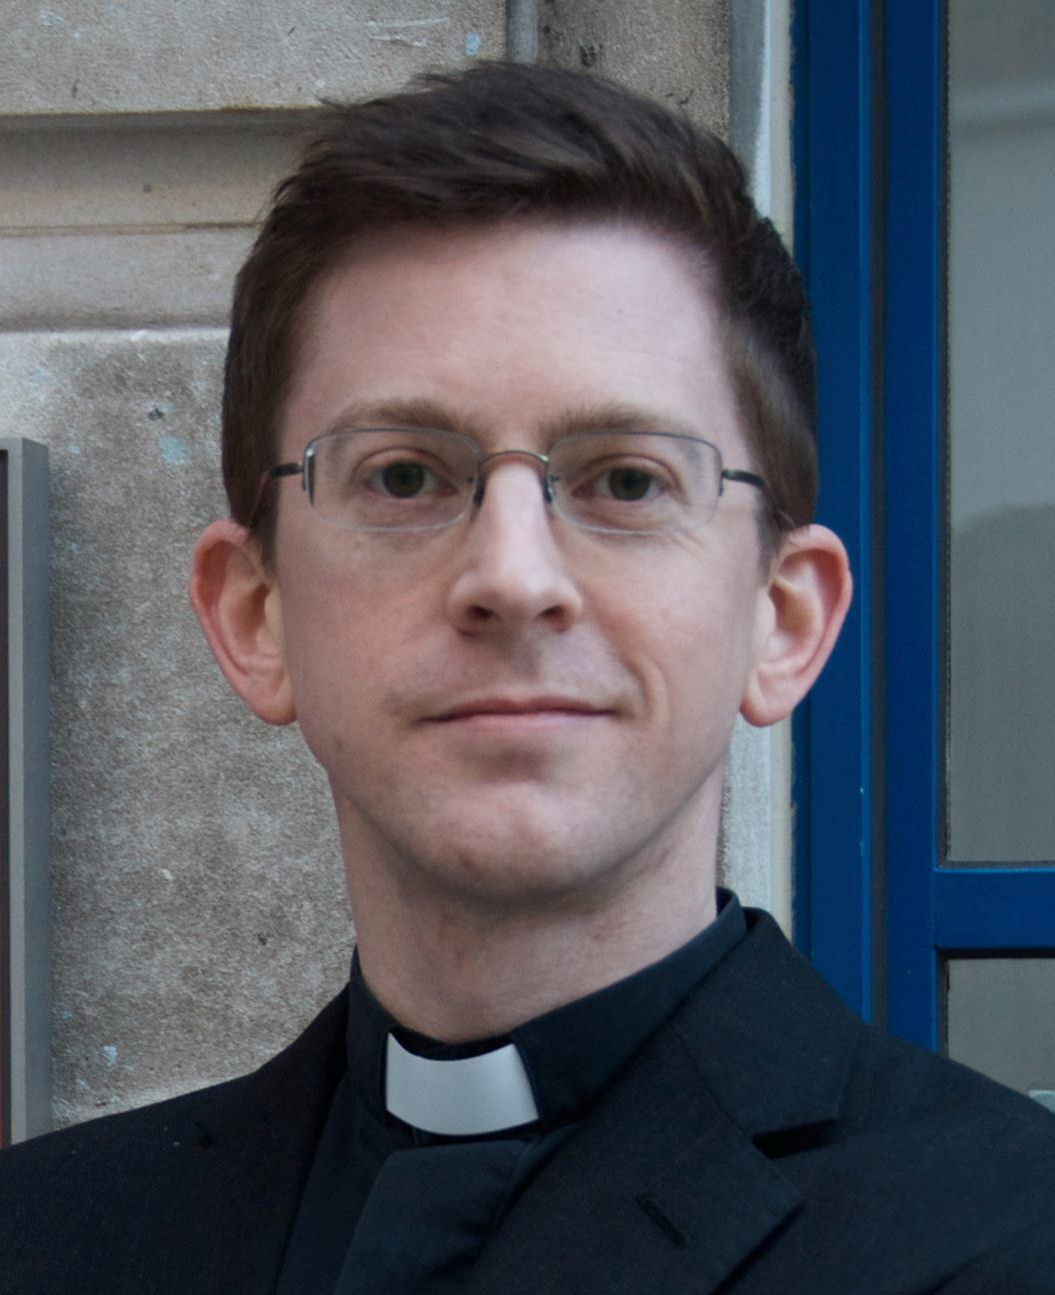 LSE Chaplain Reverend Canon Doctor James Walters